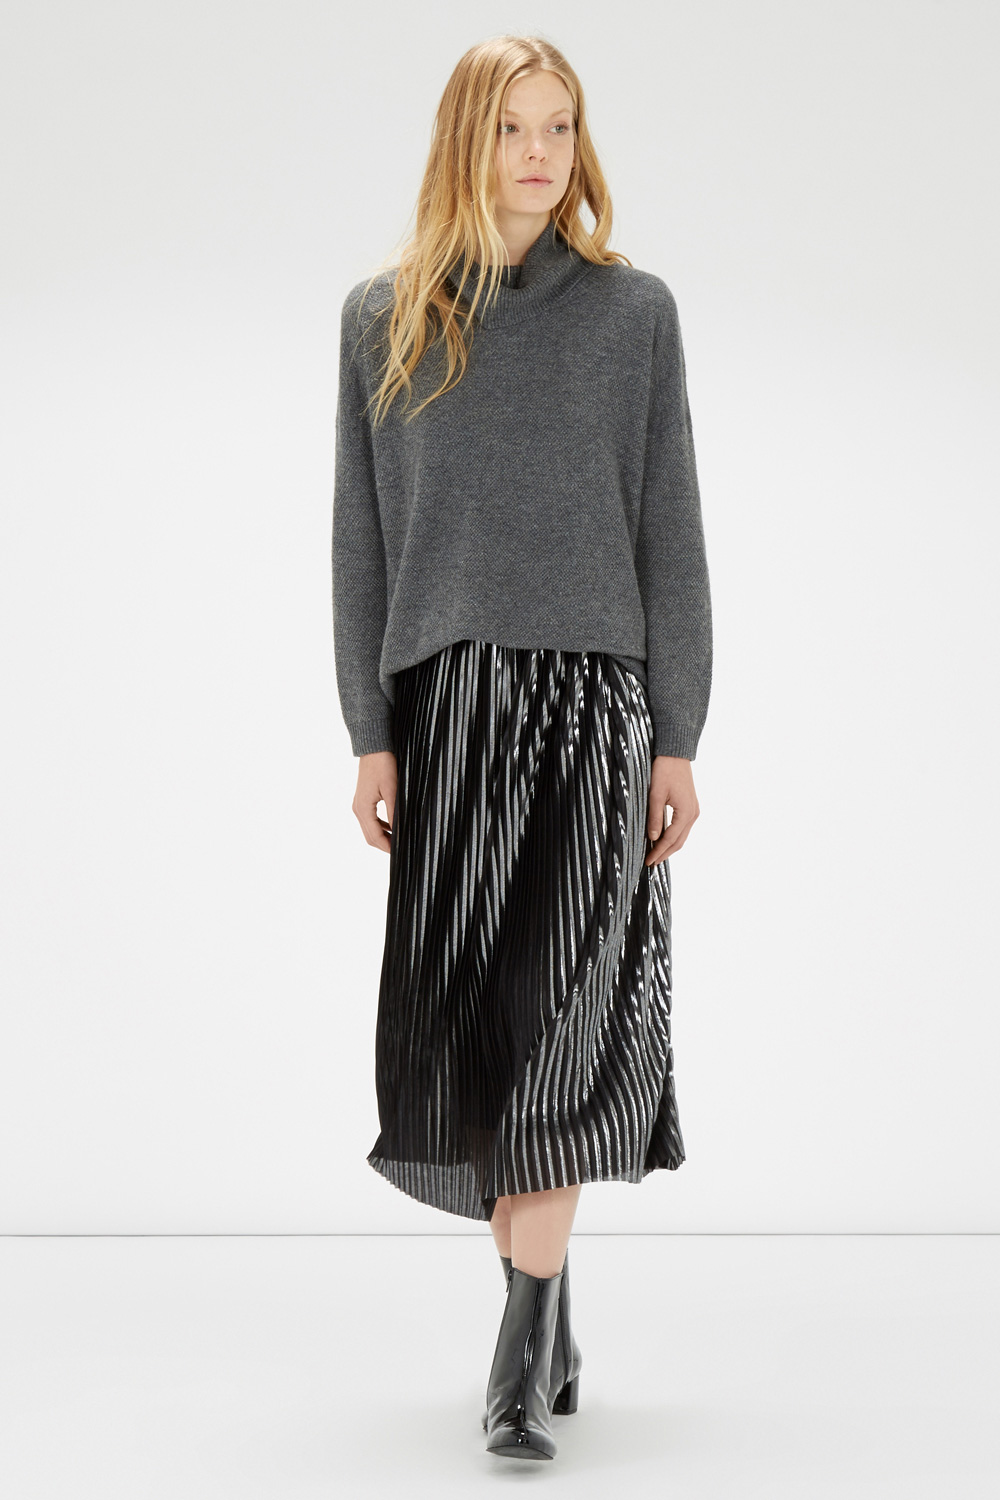 Metallic plisse skirt, £49, Warehouse